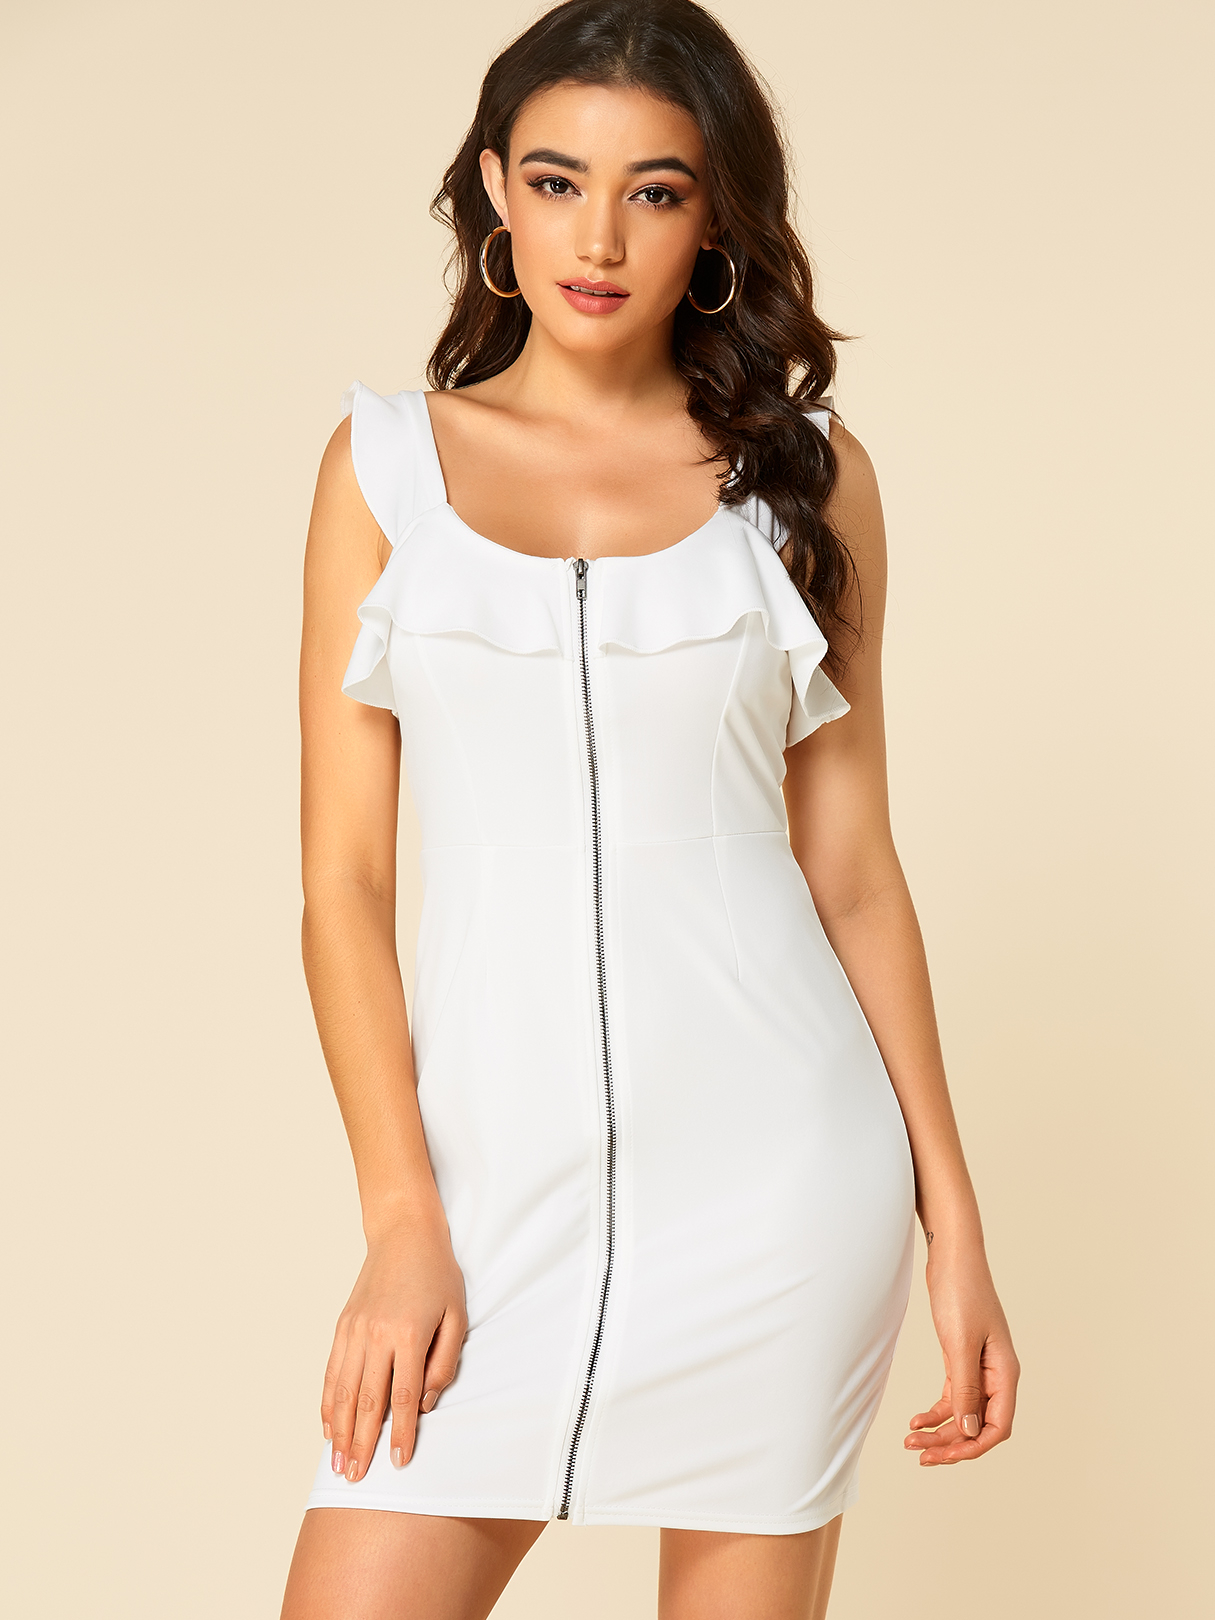 White Zip Front Flounce Details Bodycon Dress